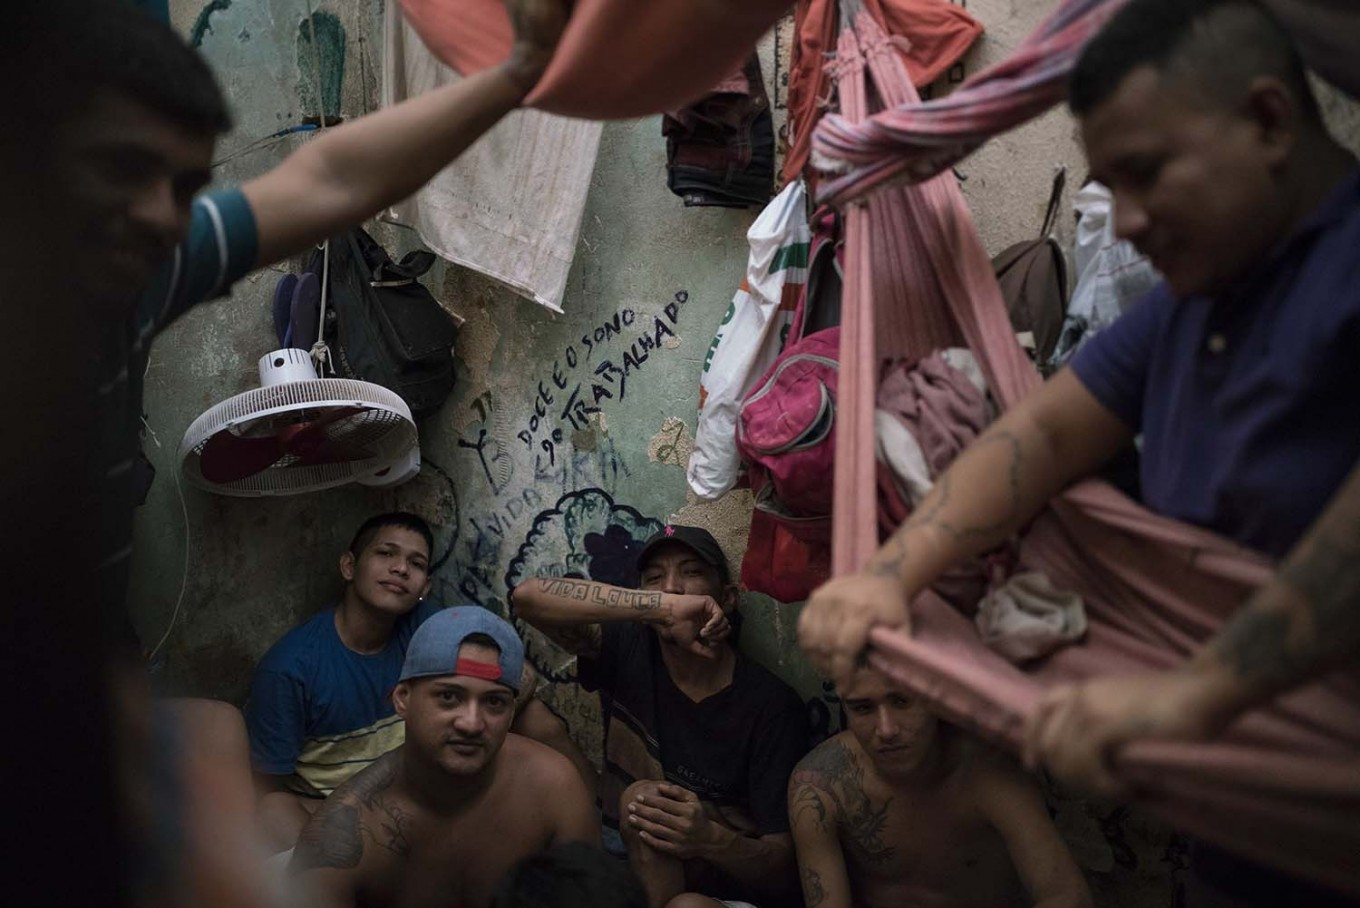 In this Feb. 6, 2017 photo, detainees sit inside an overcrowded cell at a police station near Manaus, Brazil. The walls are filled with infiltrations of moisture, the poor construction of the roof let almost no light shine inside and inmates put hammocks one on the top of the other, while one prisoner slept in the open bathroom. AP Photo/Felipe Dana